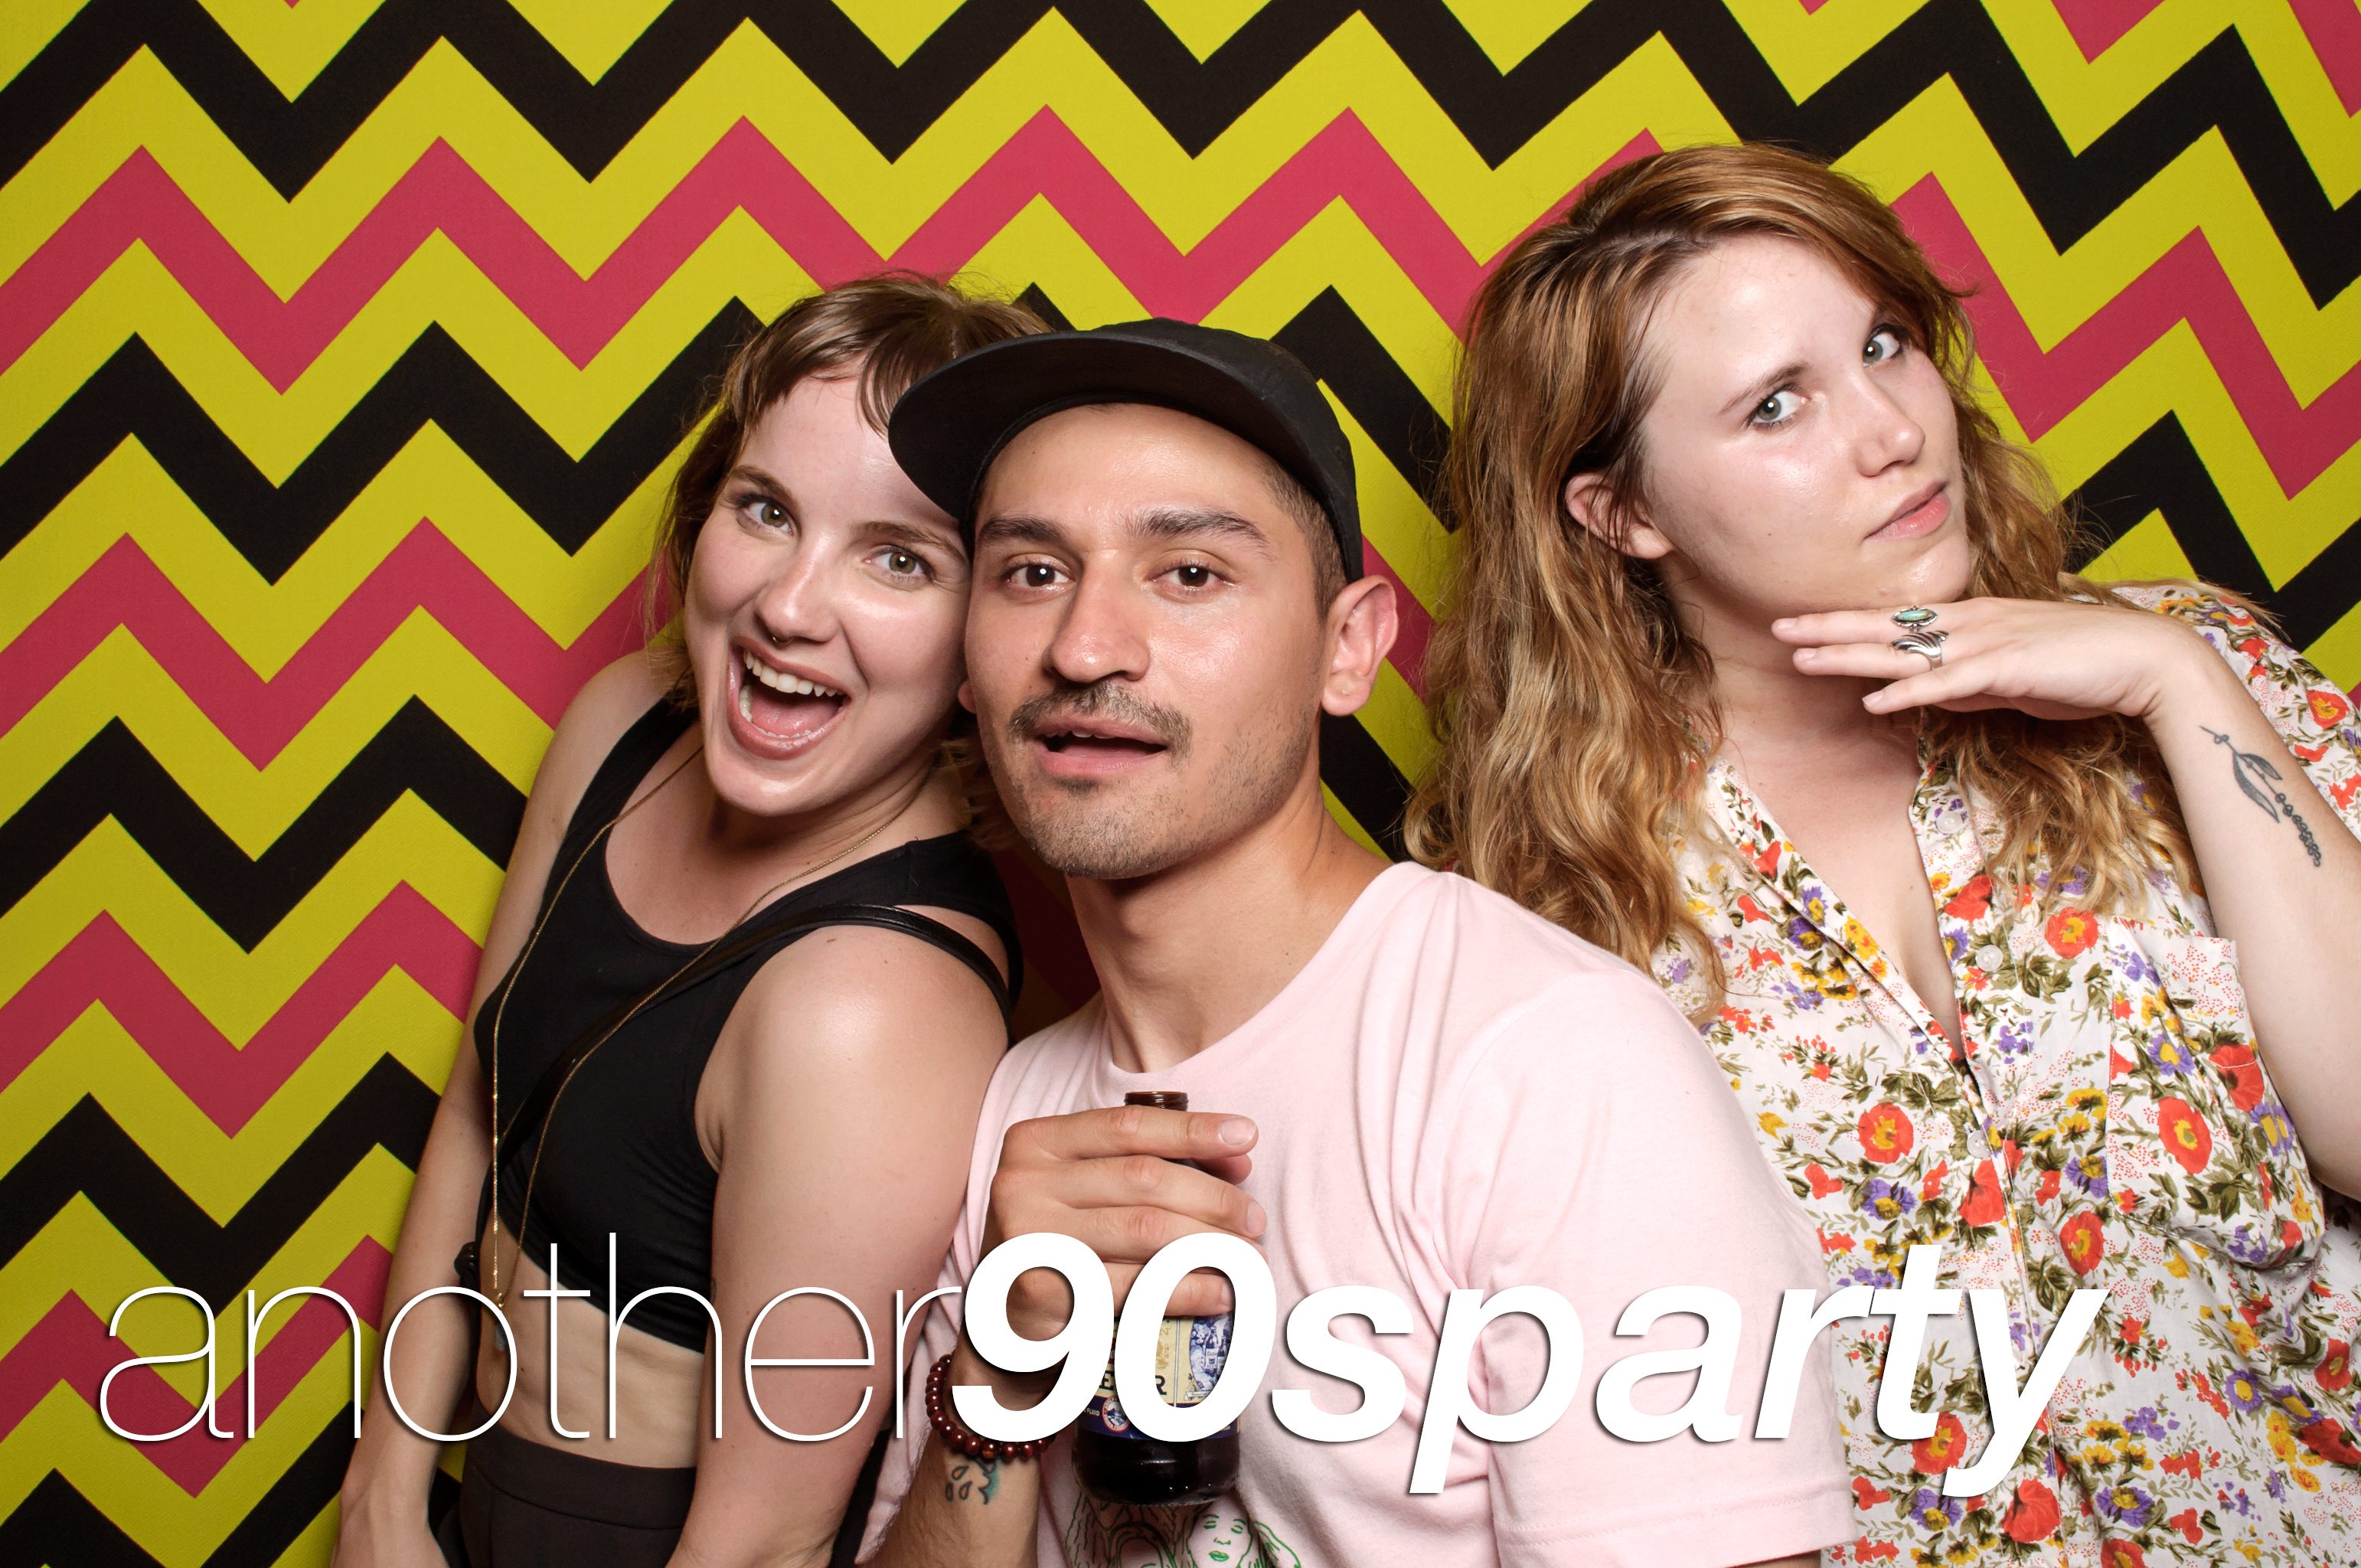 photo booth portraits from another nineties party, june 2016